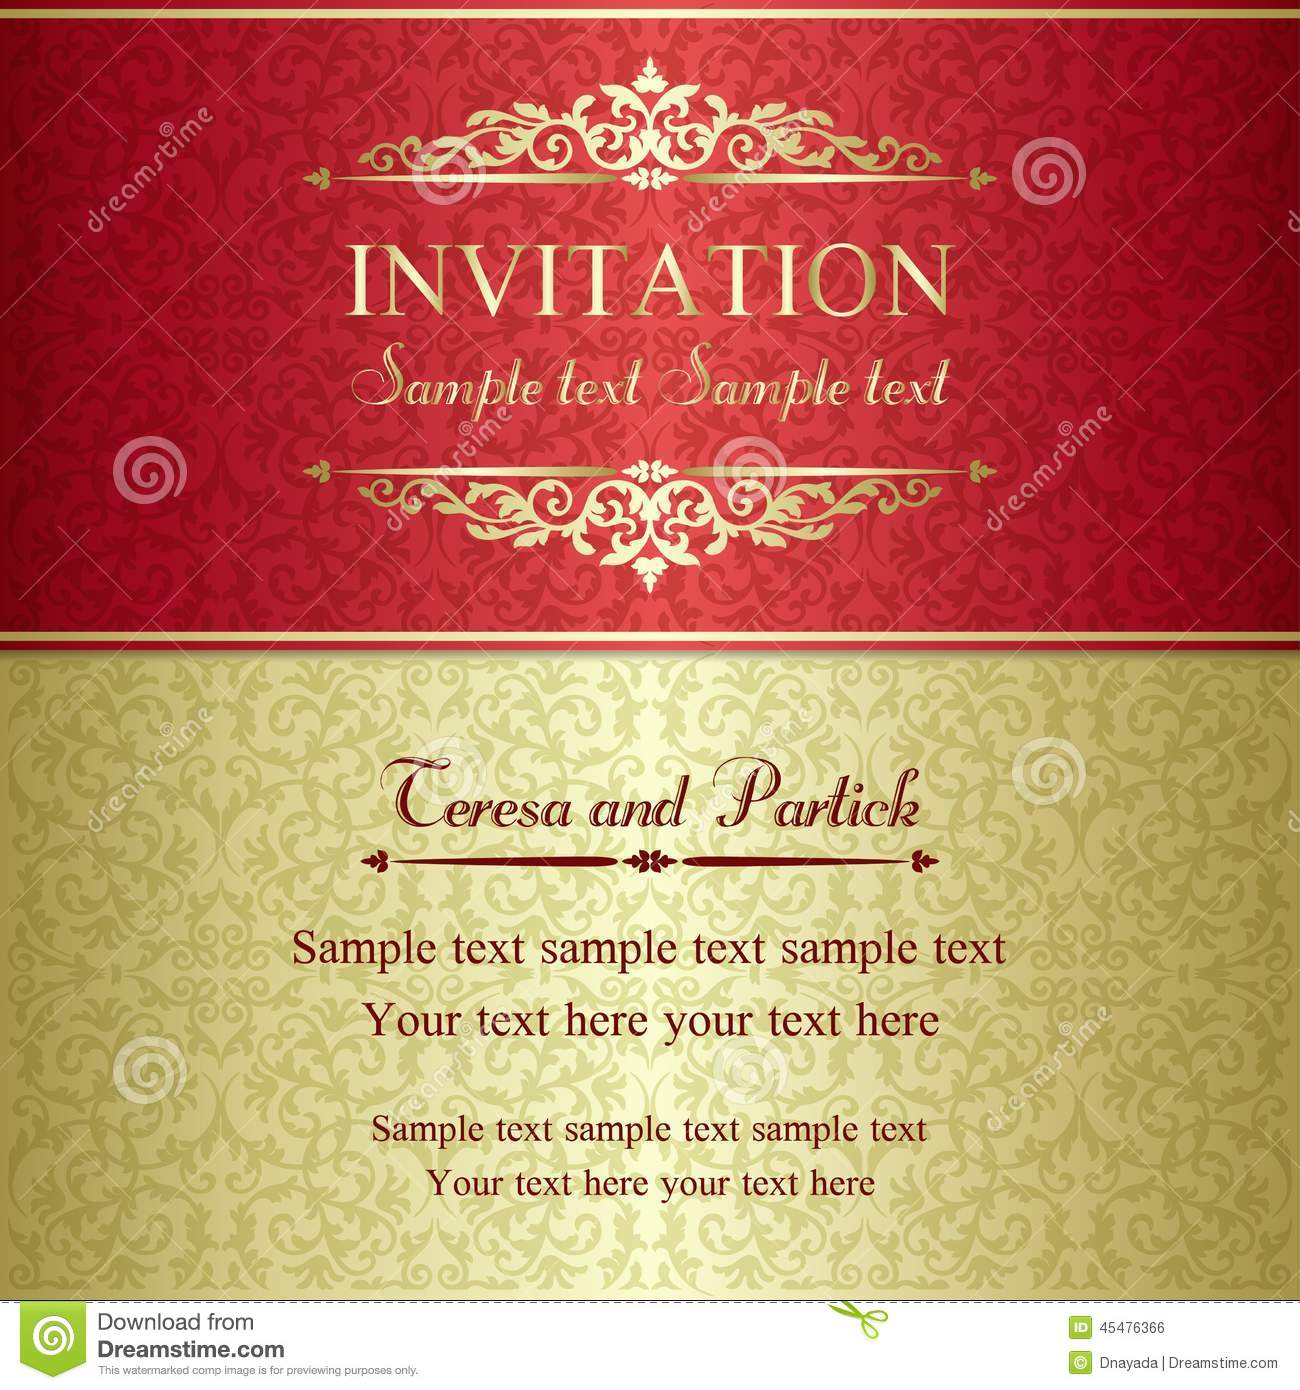 Baroque invitation gold and red stock vector illustration of baroque invitation gold and red stopboris Gallery